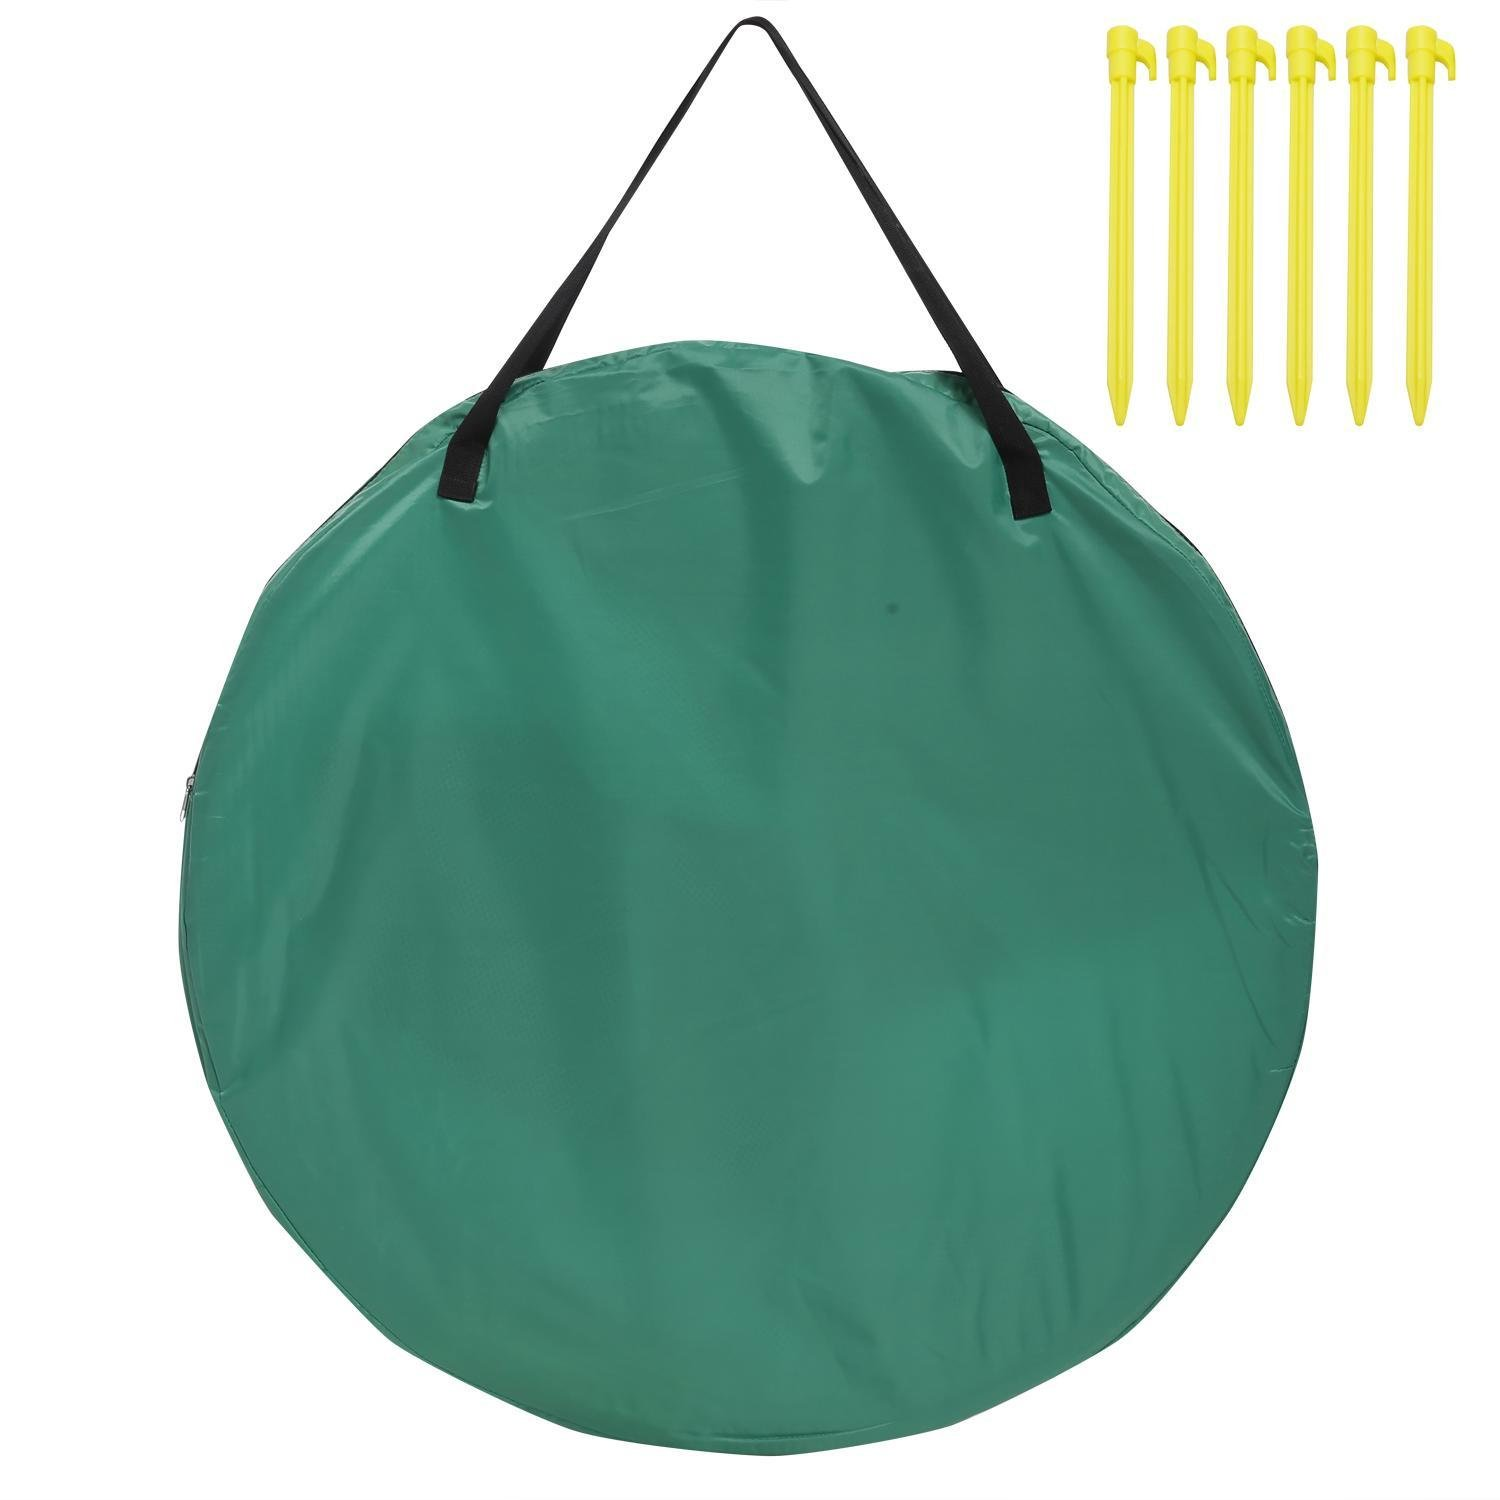 Hindom Portable Golf Practice Net Driving Range Foldable Pop-Up Golf Training Batting Cage with Carrying Bag (US STOCK) by Hindom (Image #7)